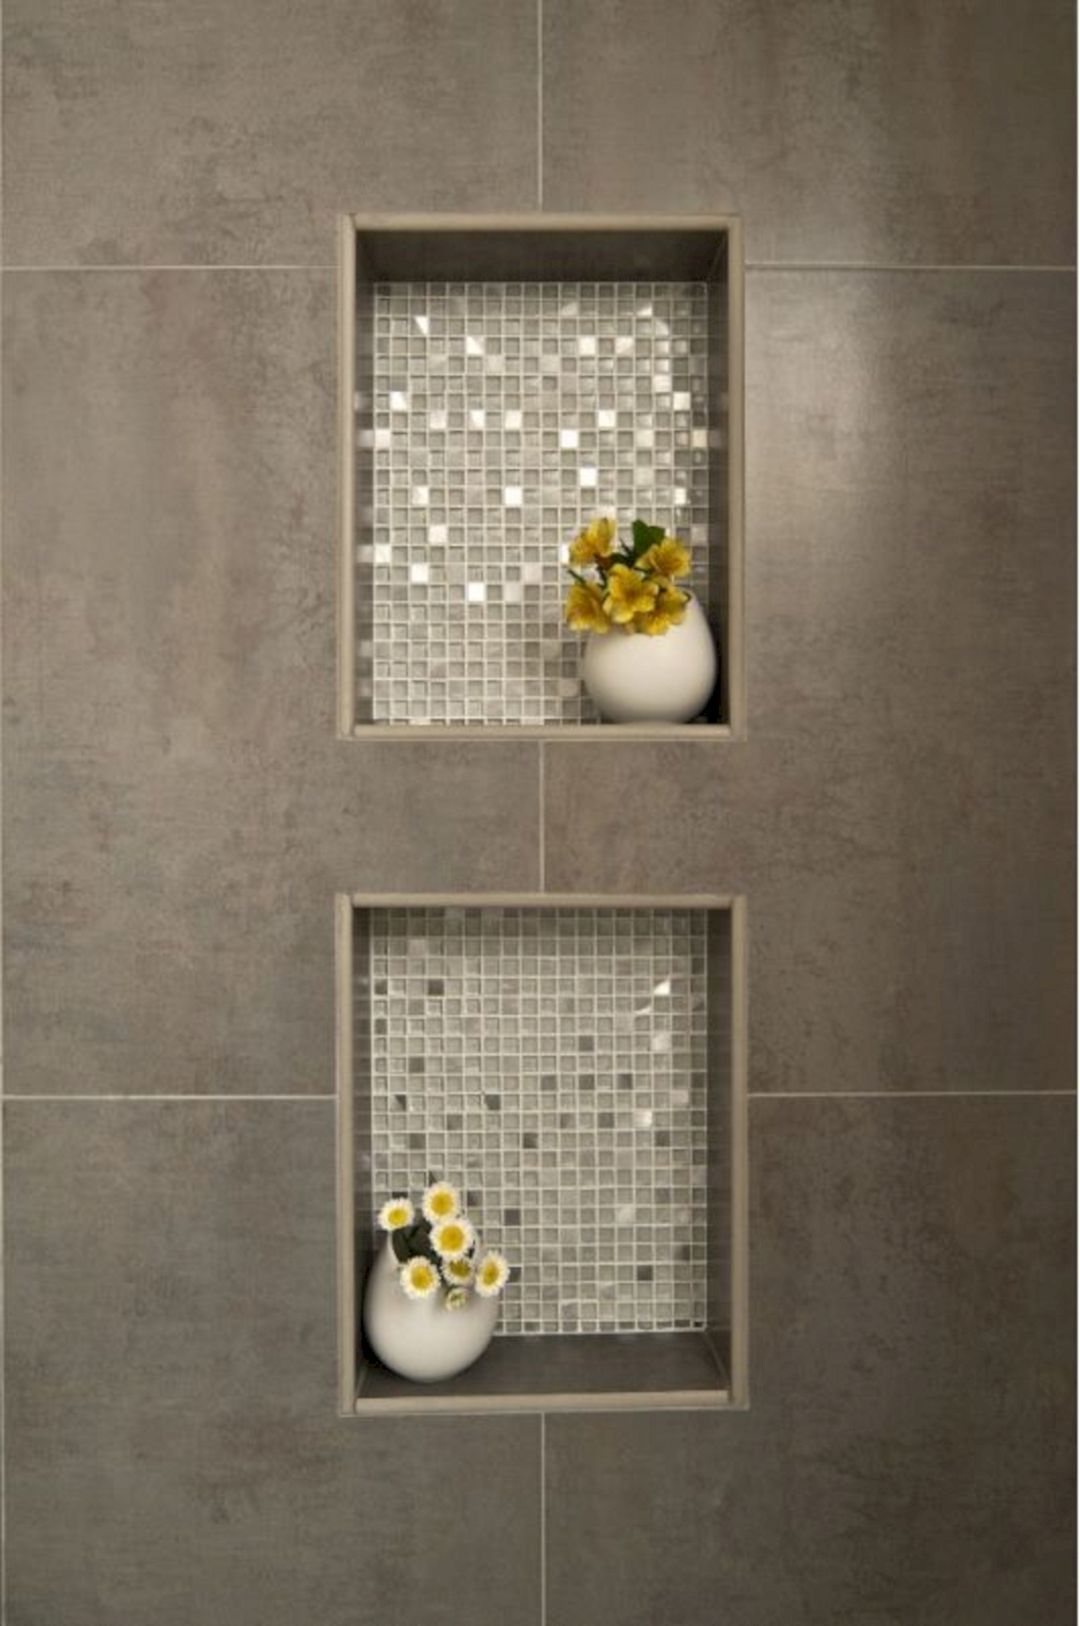 Ceramic Bathroom Tile Design Ceramic Bathroom Tile Design Design Ideas And Photos Bathroom Tile Designs Shower Remodel Bathroom Trends